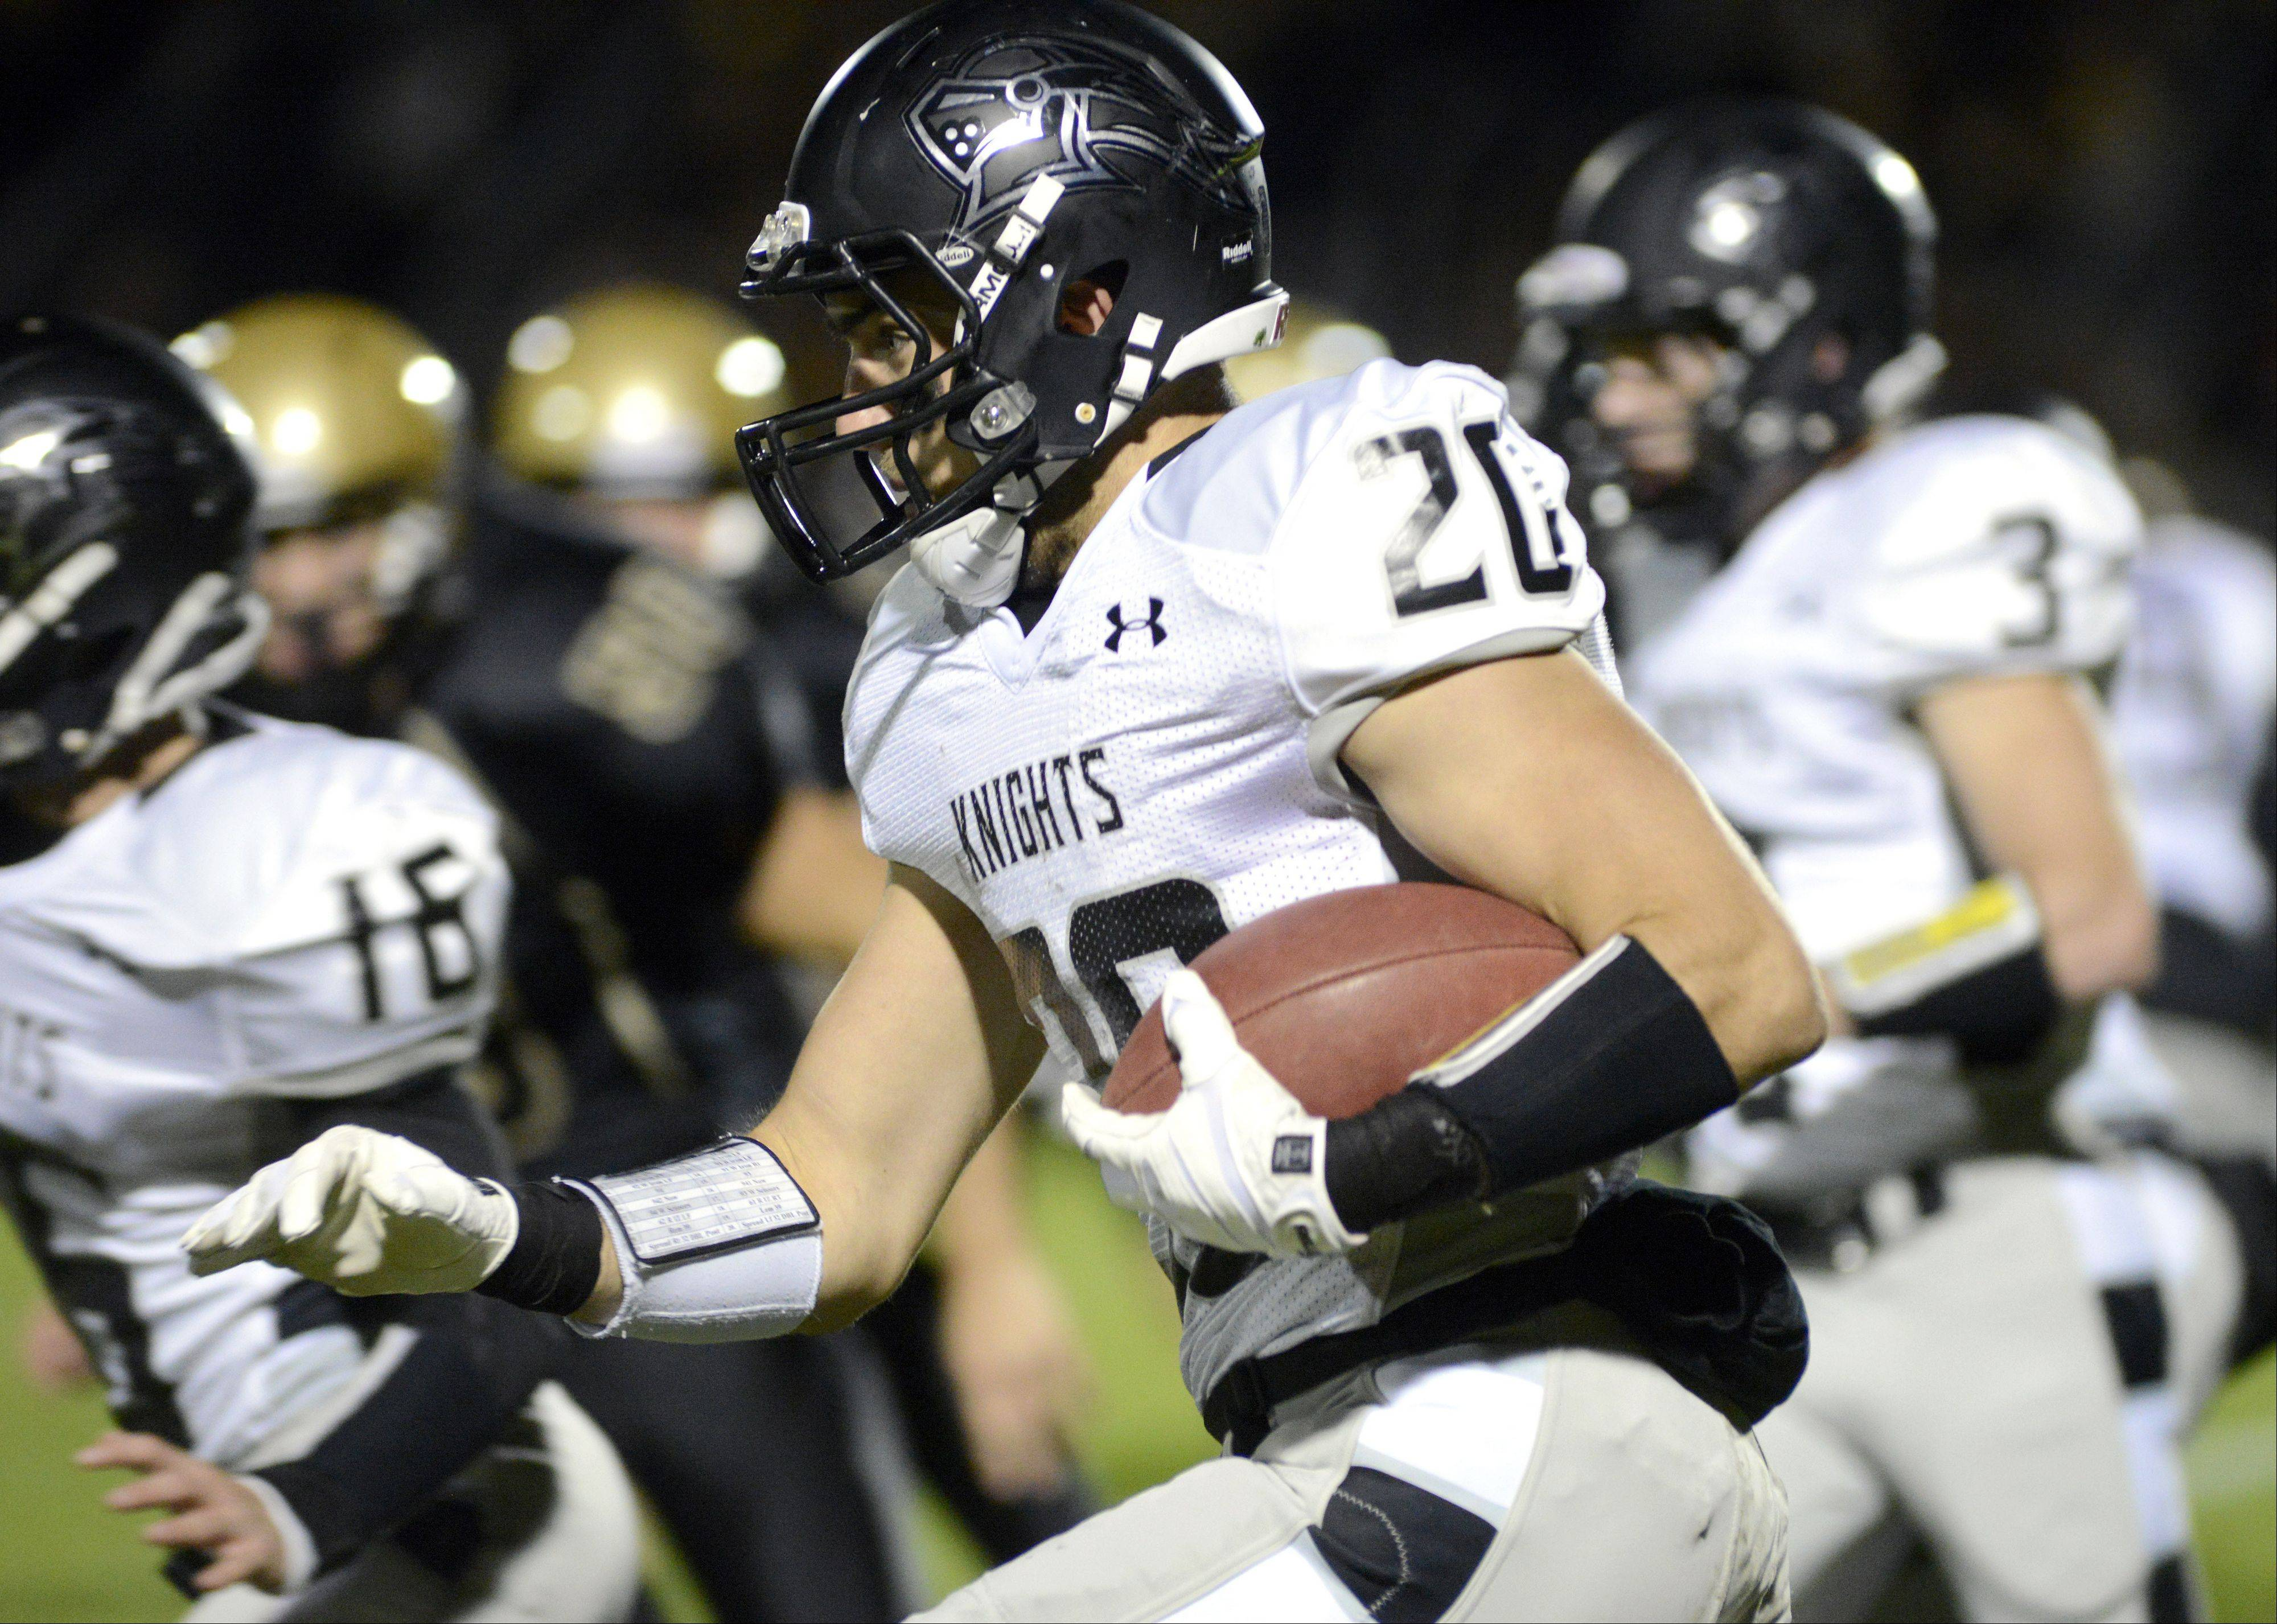 Kaneland's Dylan Nauert sprints down the center of the field in the first quarter vs. Sycamore on Friday